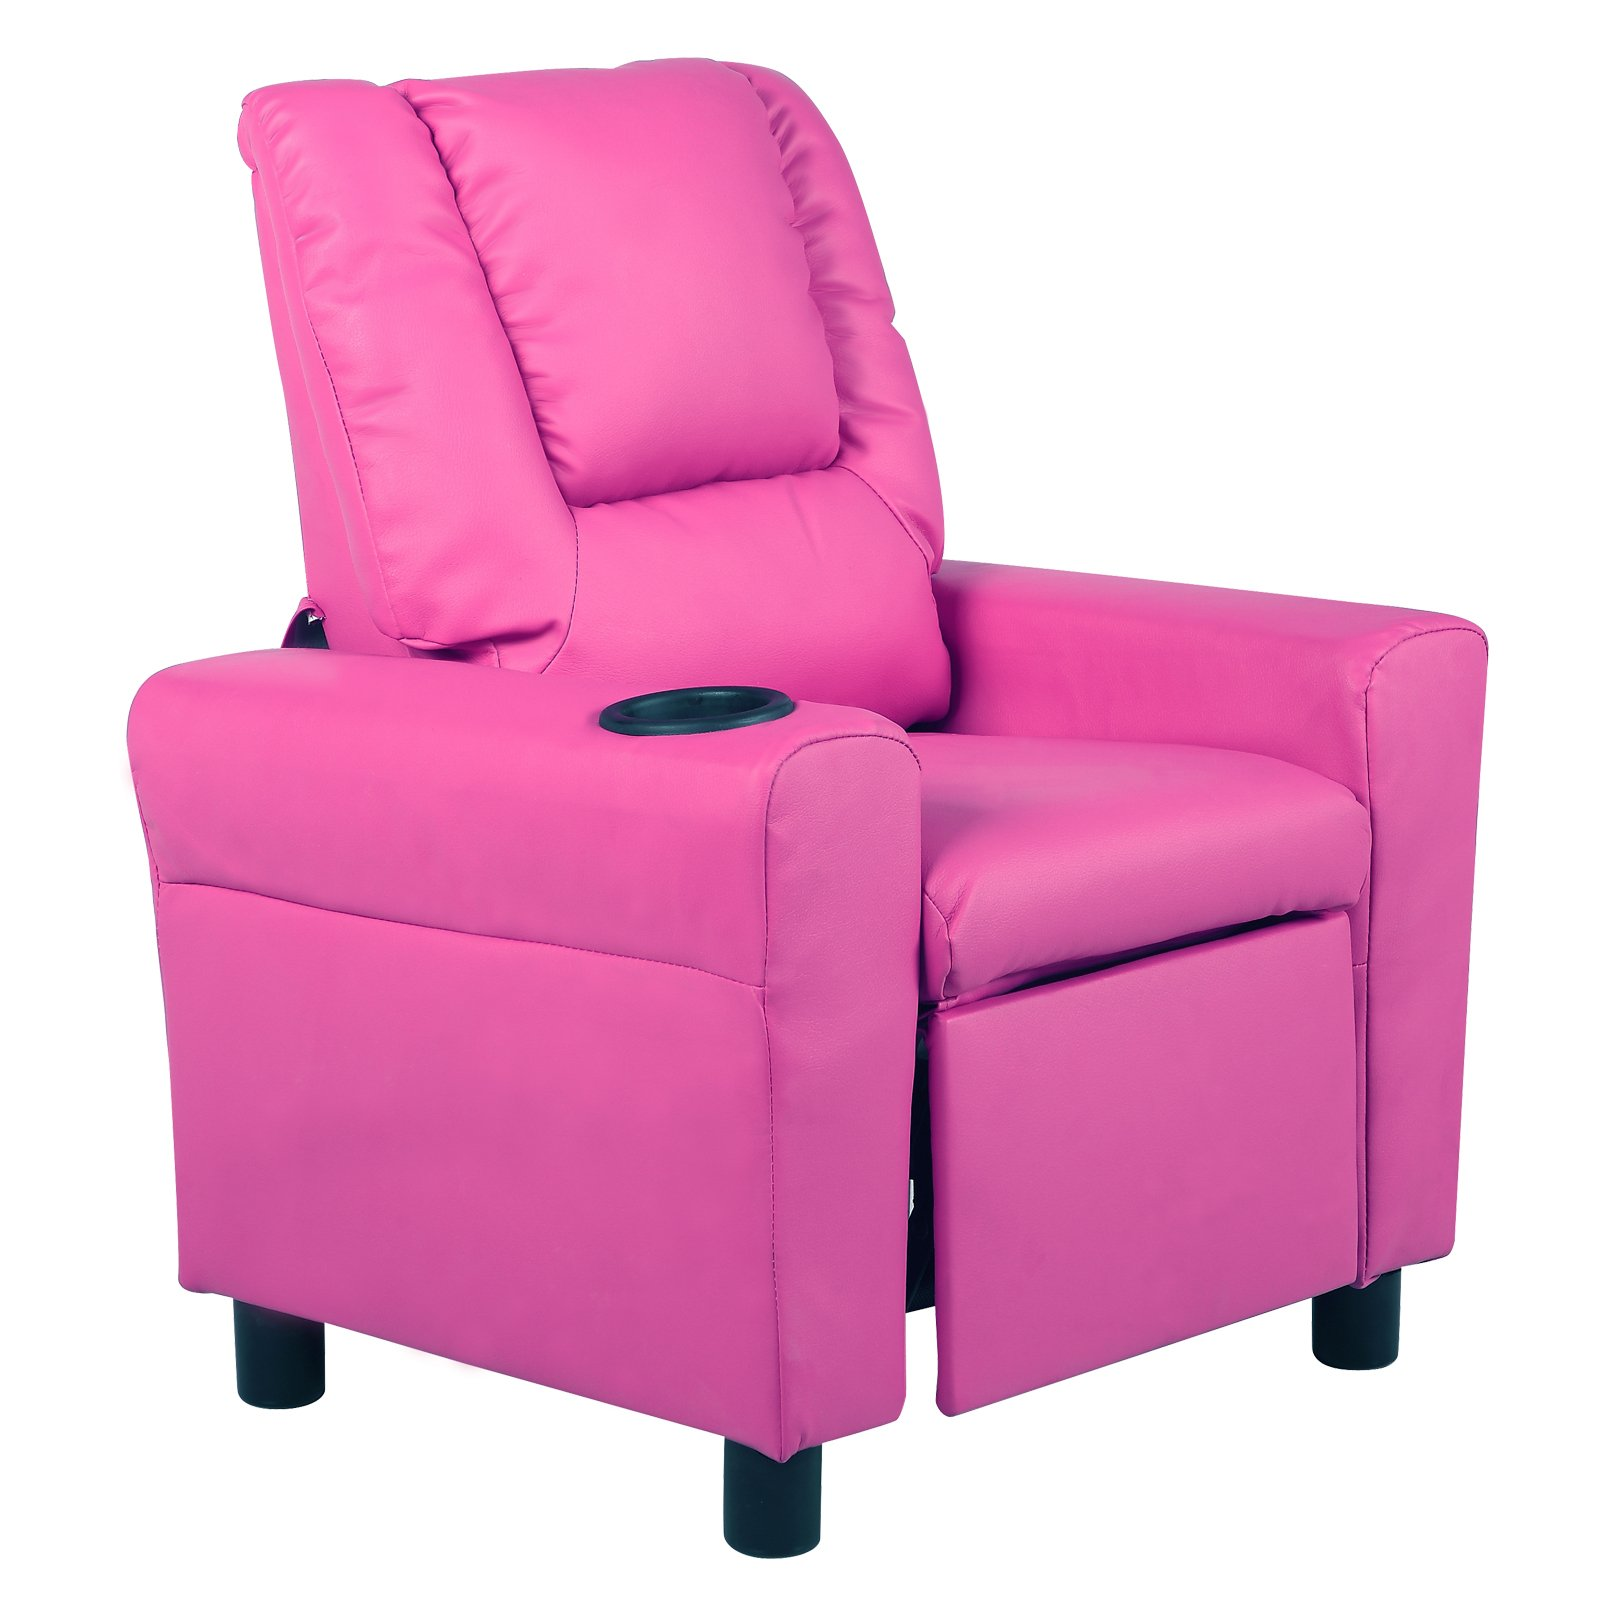 Mecor Kids Recliner with Cup Holder/Headrest Leather Sofa for Children Living Room Furniture (Pink)